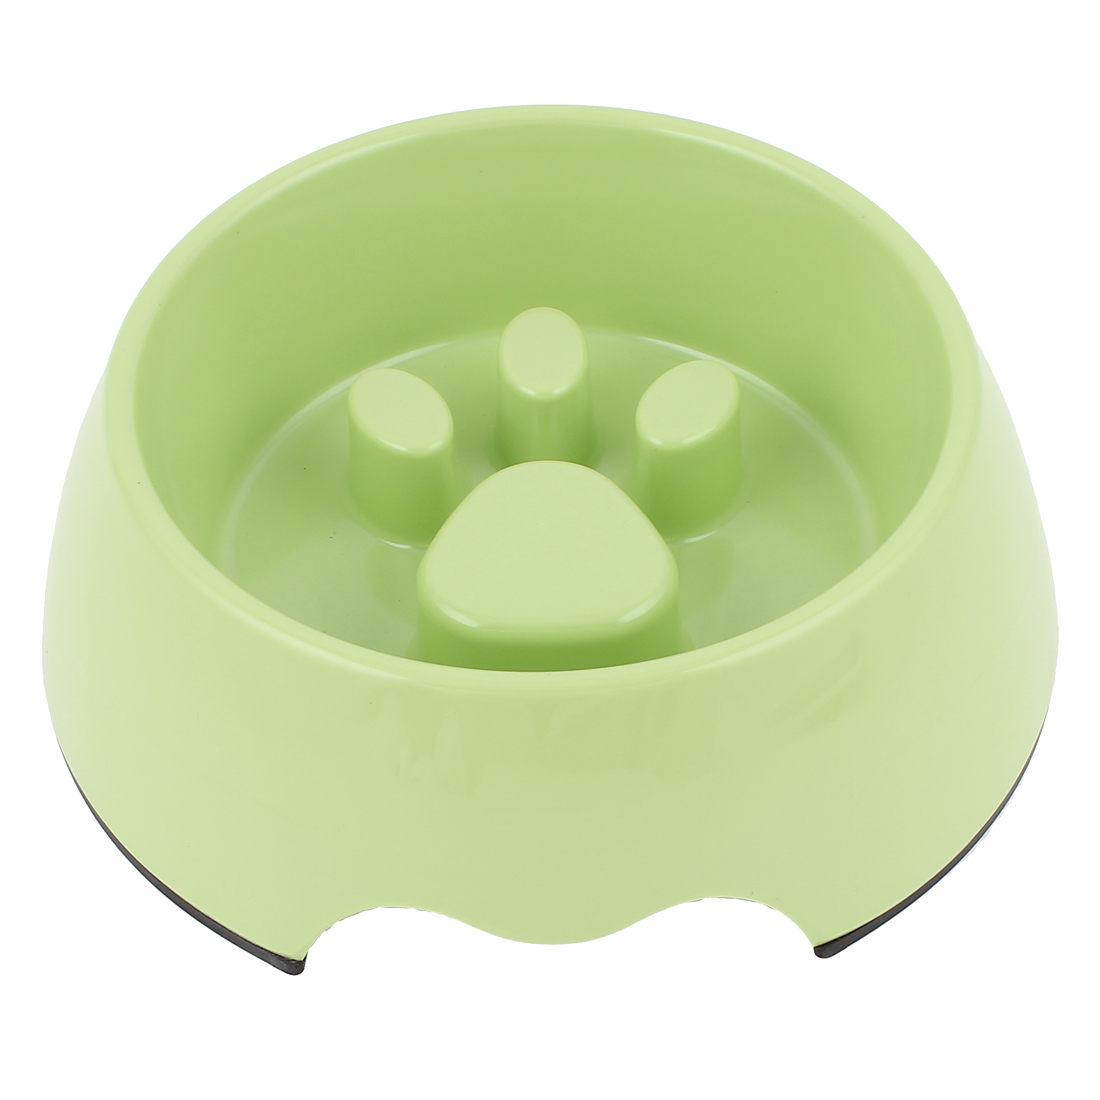 Plastic Pet Cat Puppy Stop Fast Slow Eating Bloat Dish Feeder Bowl Green